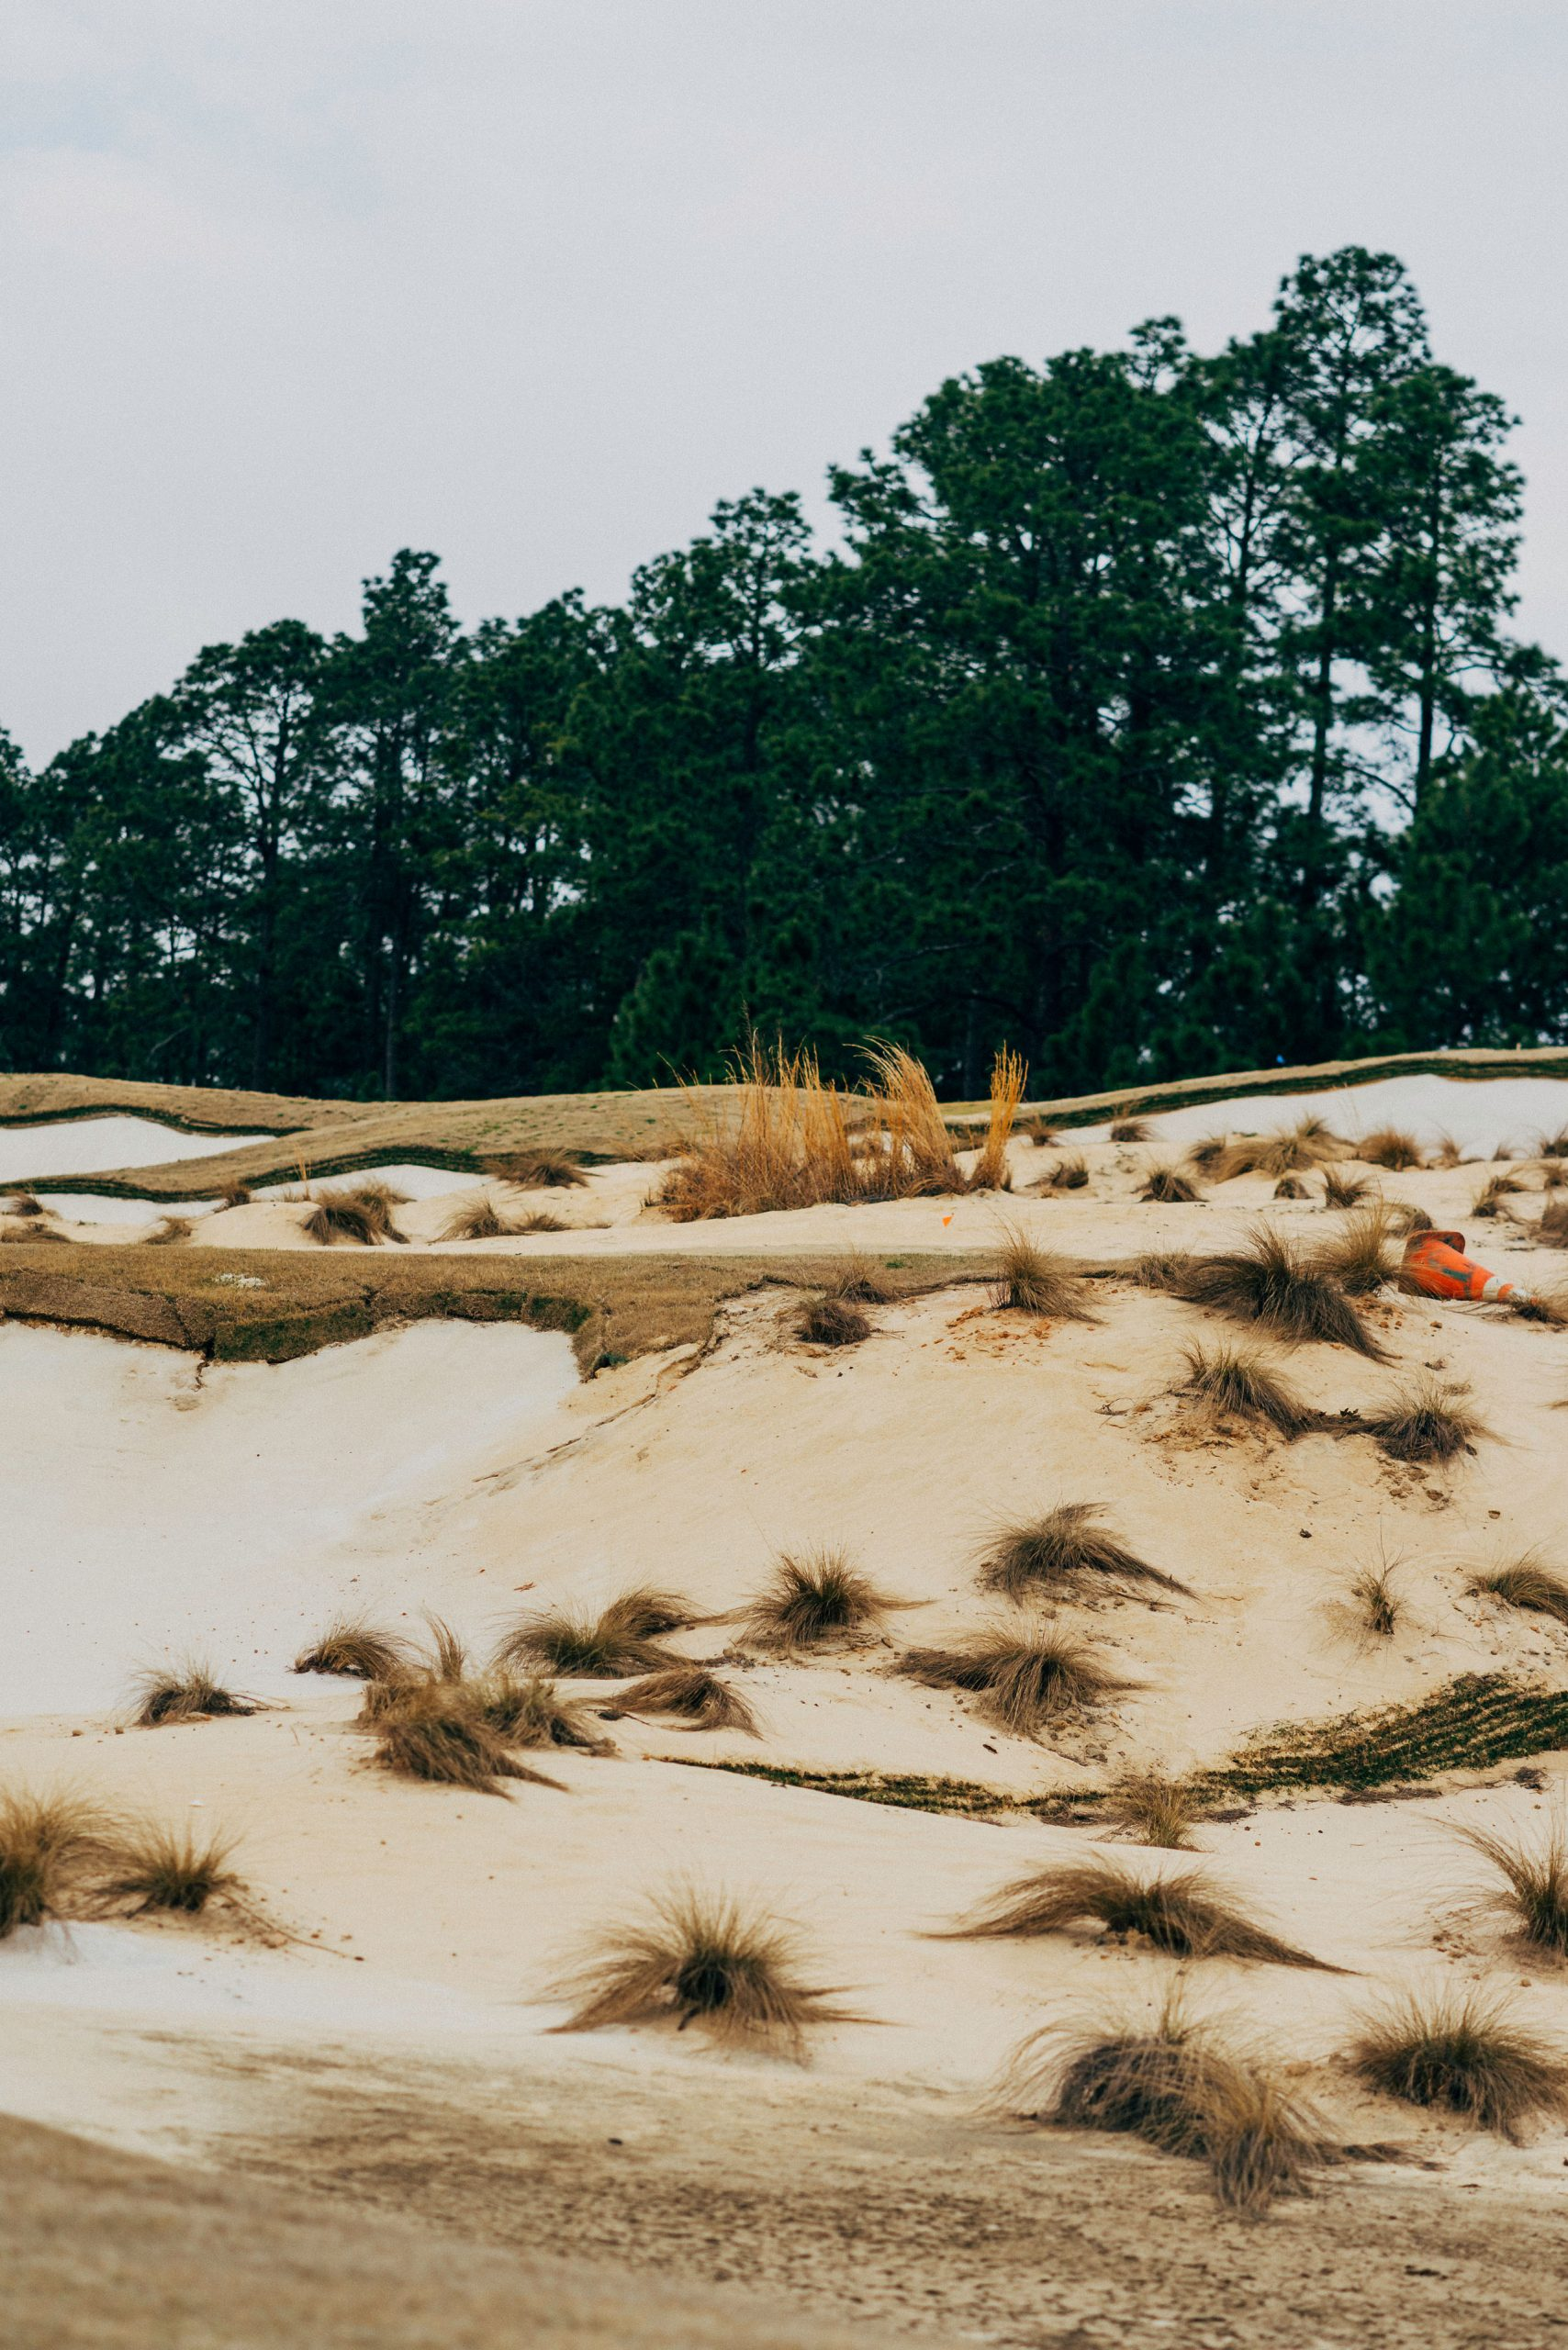 Sand Dune. Photo by Christian Hafer.